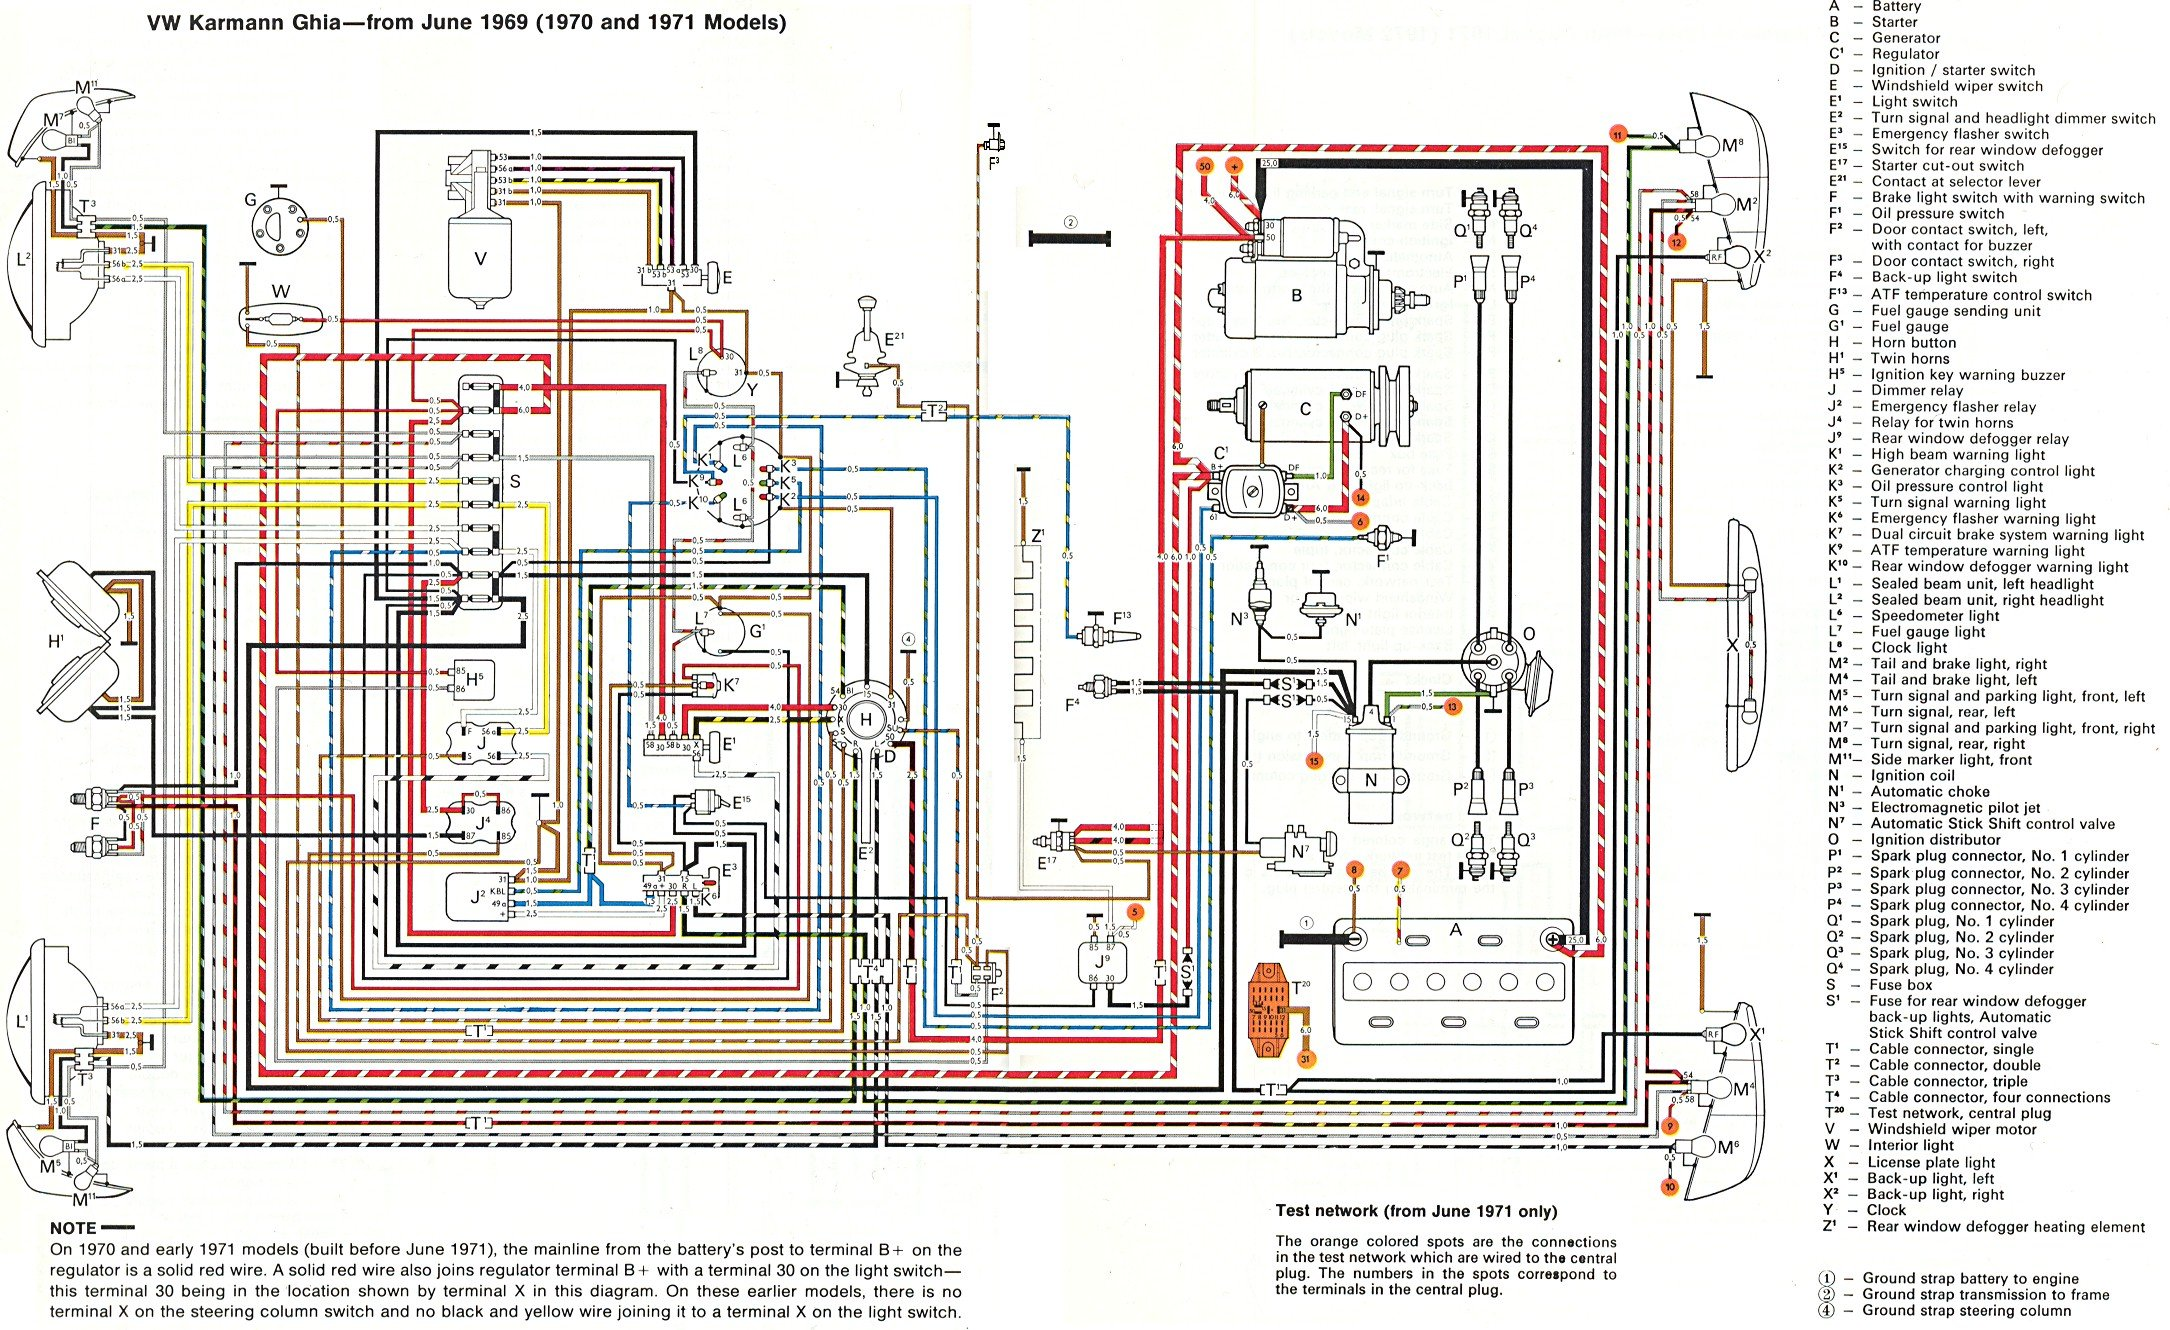 68 vw bug wiring schematic wirdig c10 blower motor wiring diagramon 1969 vw karmann ghia wiring diagram